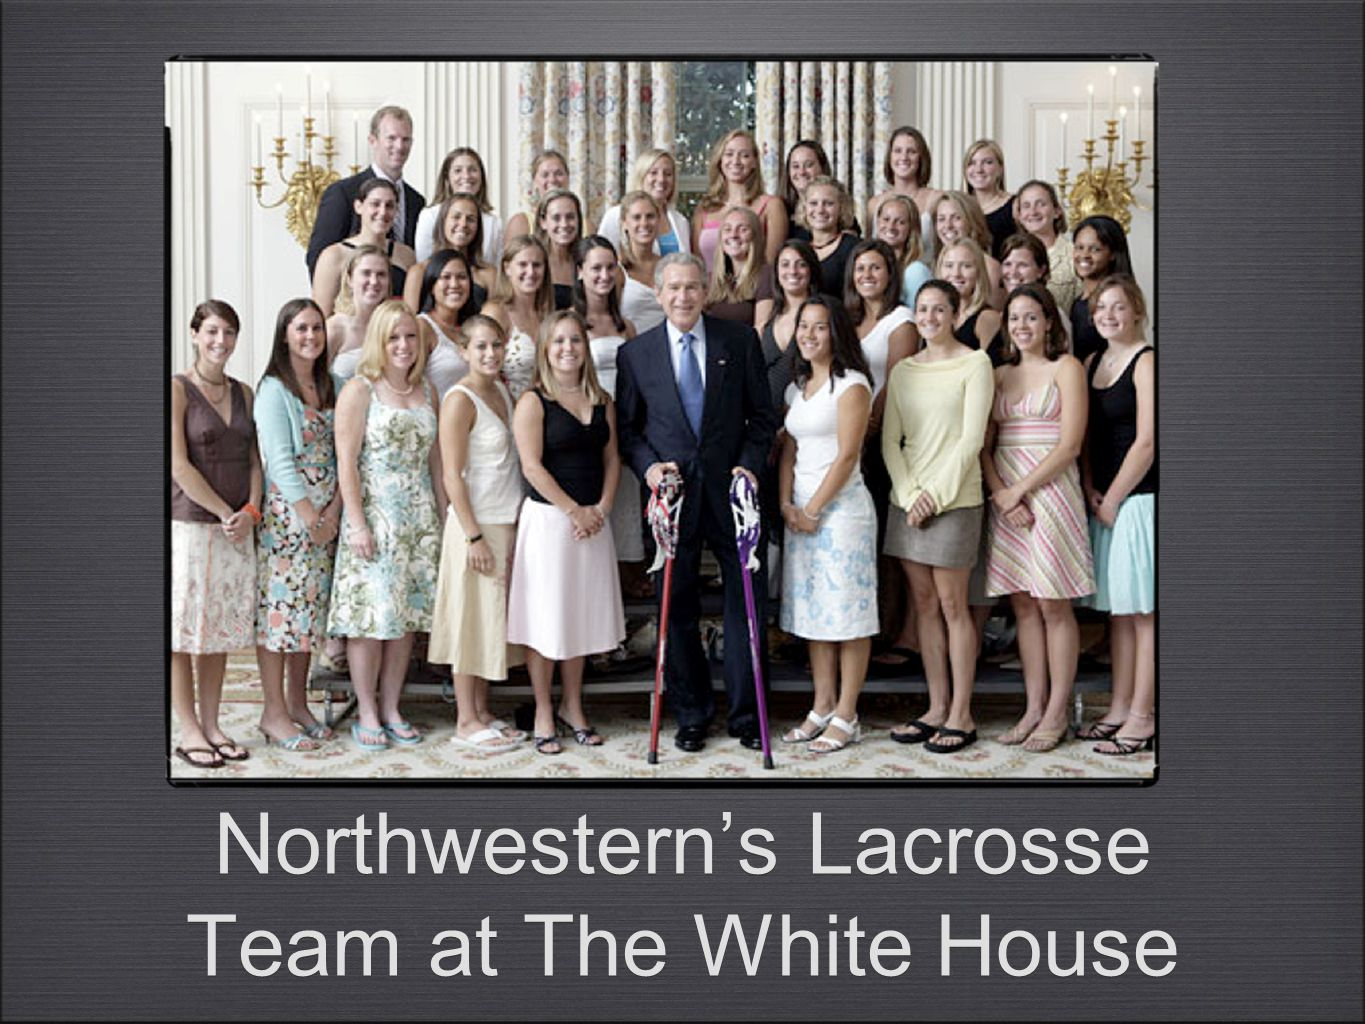 Northwestern's Lacrosse Team at The White House